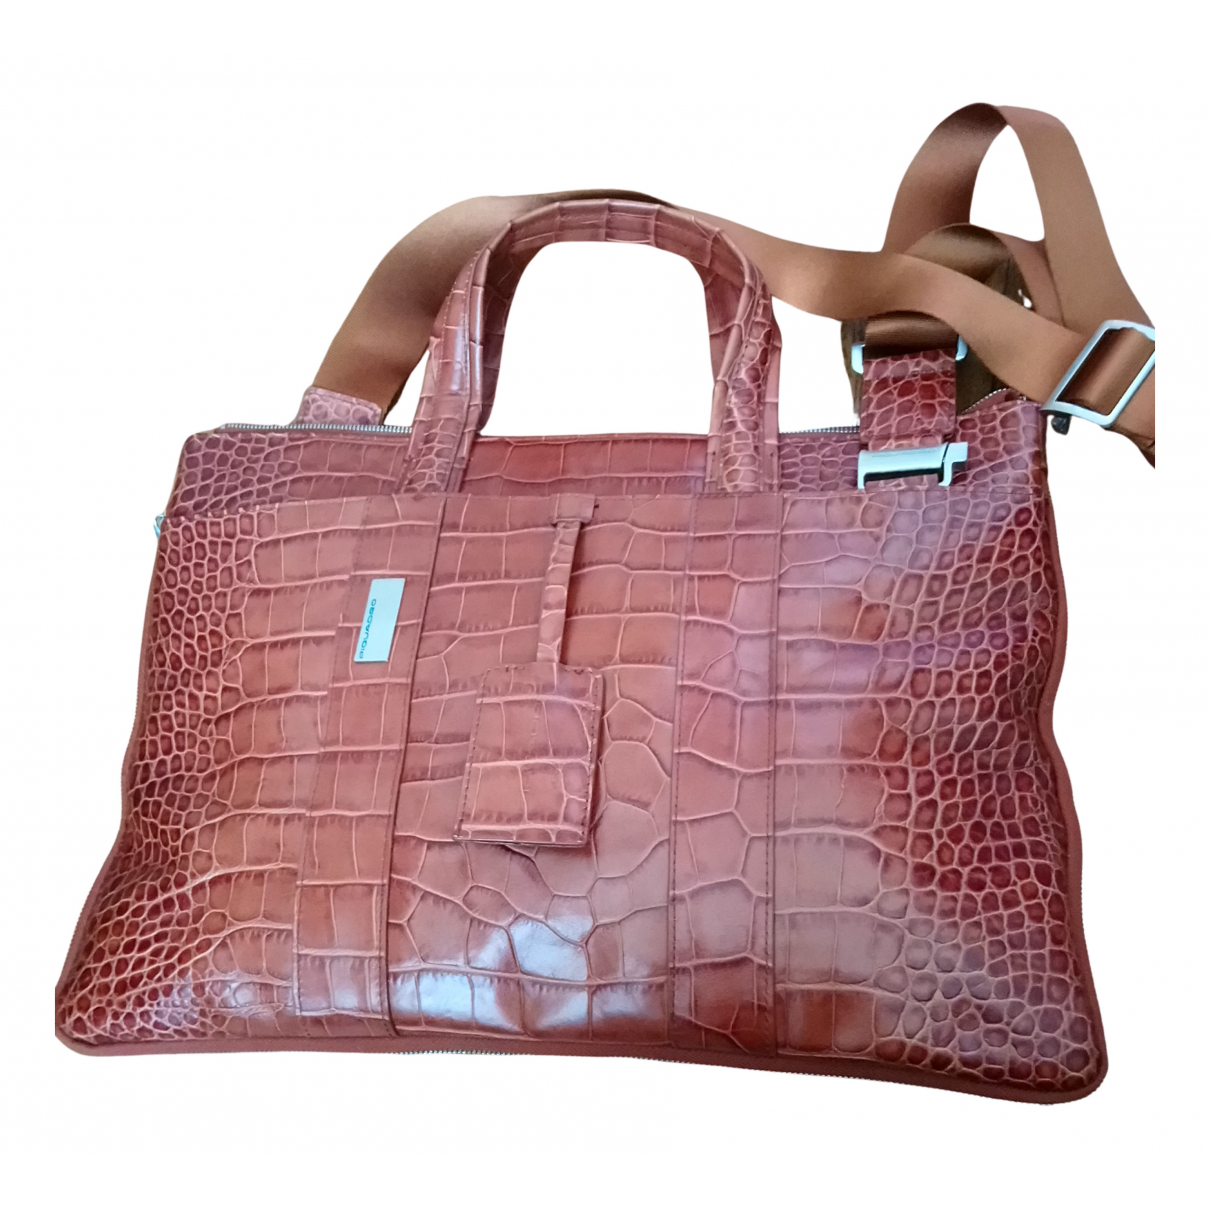 Piquadro N Camel Patent leather Travel bag for Women N